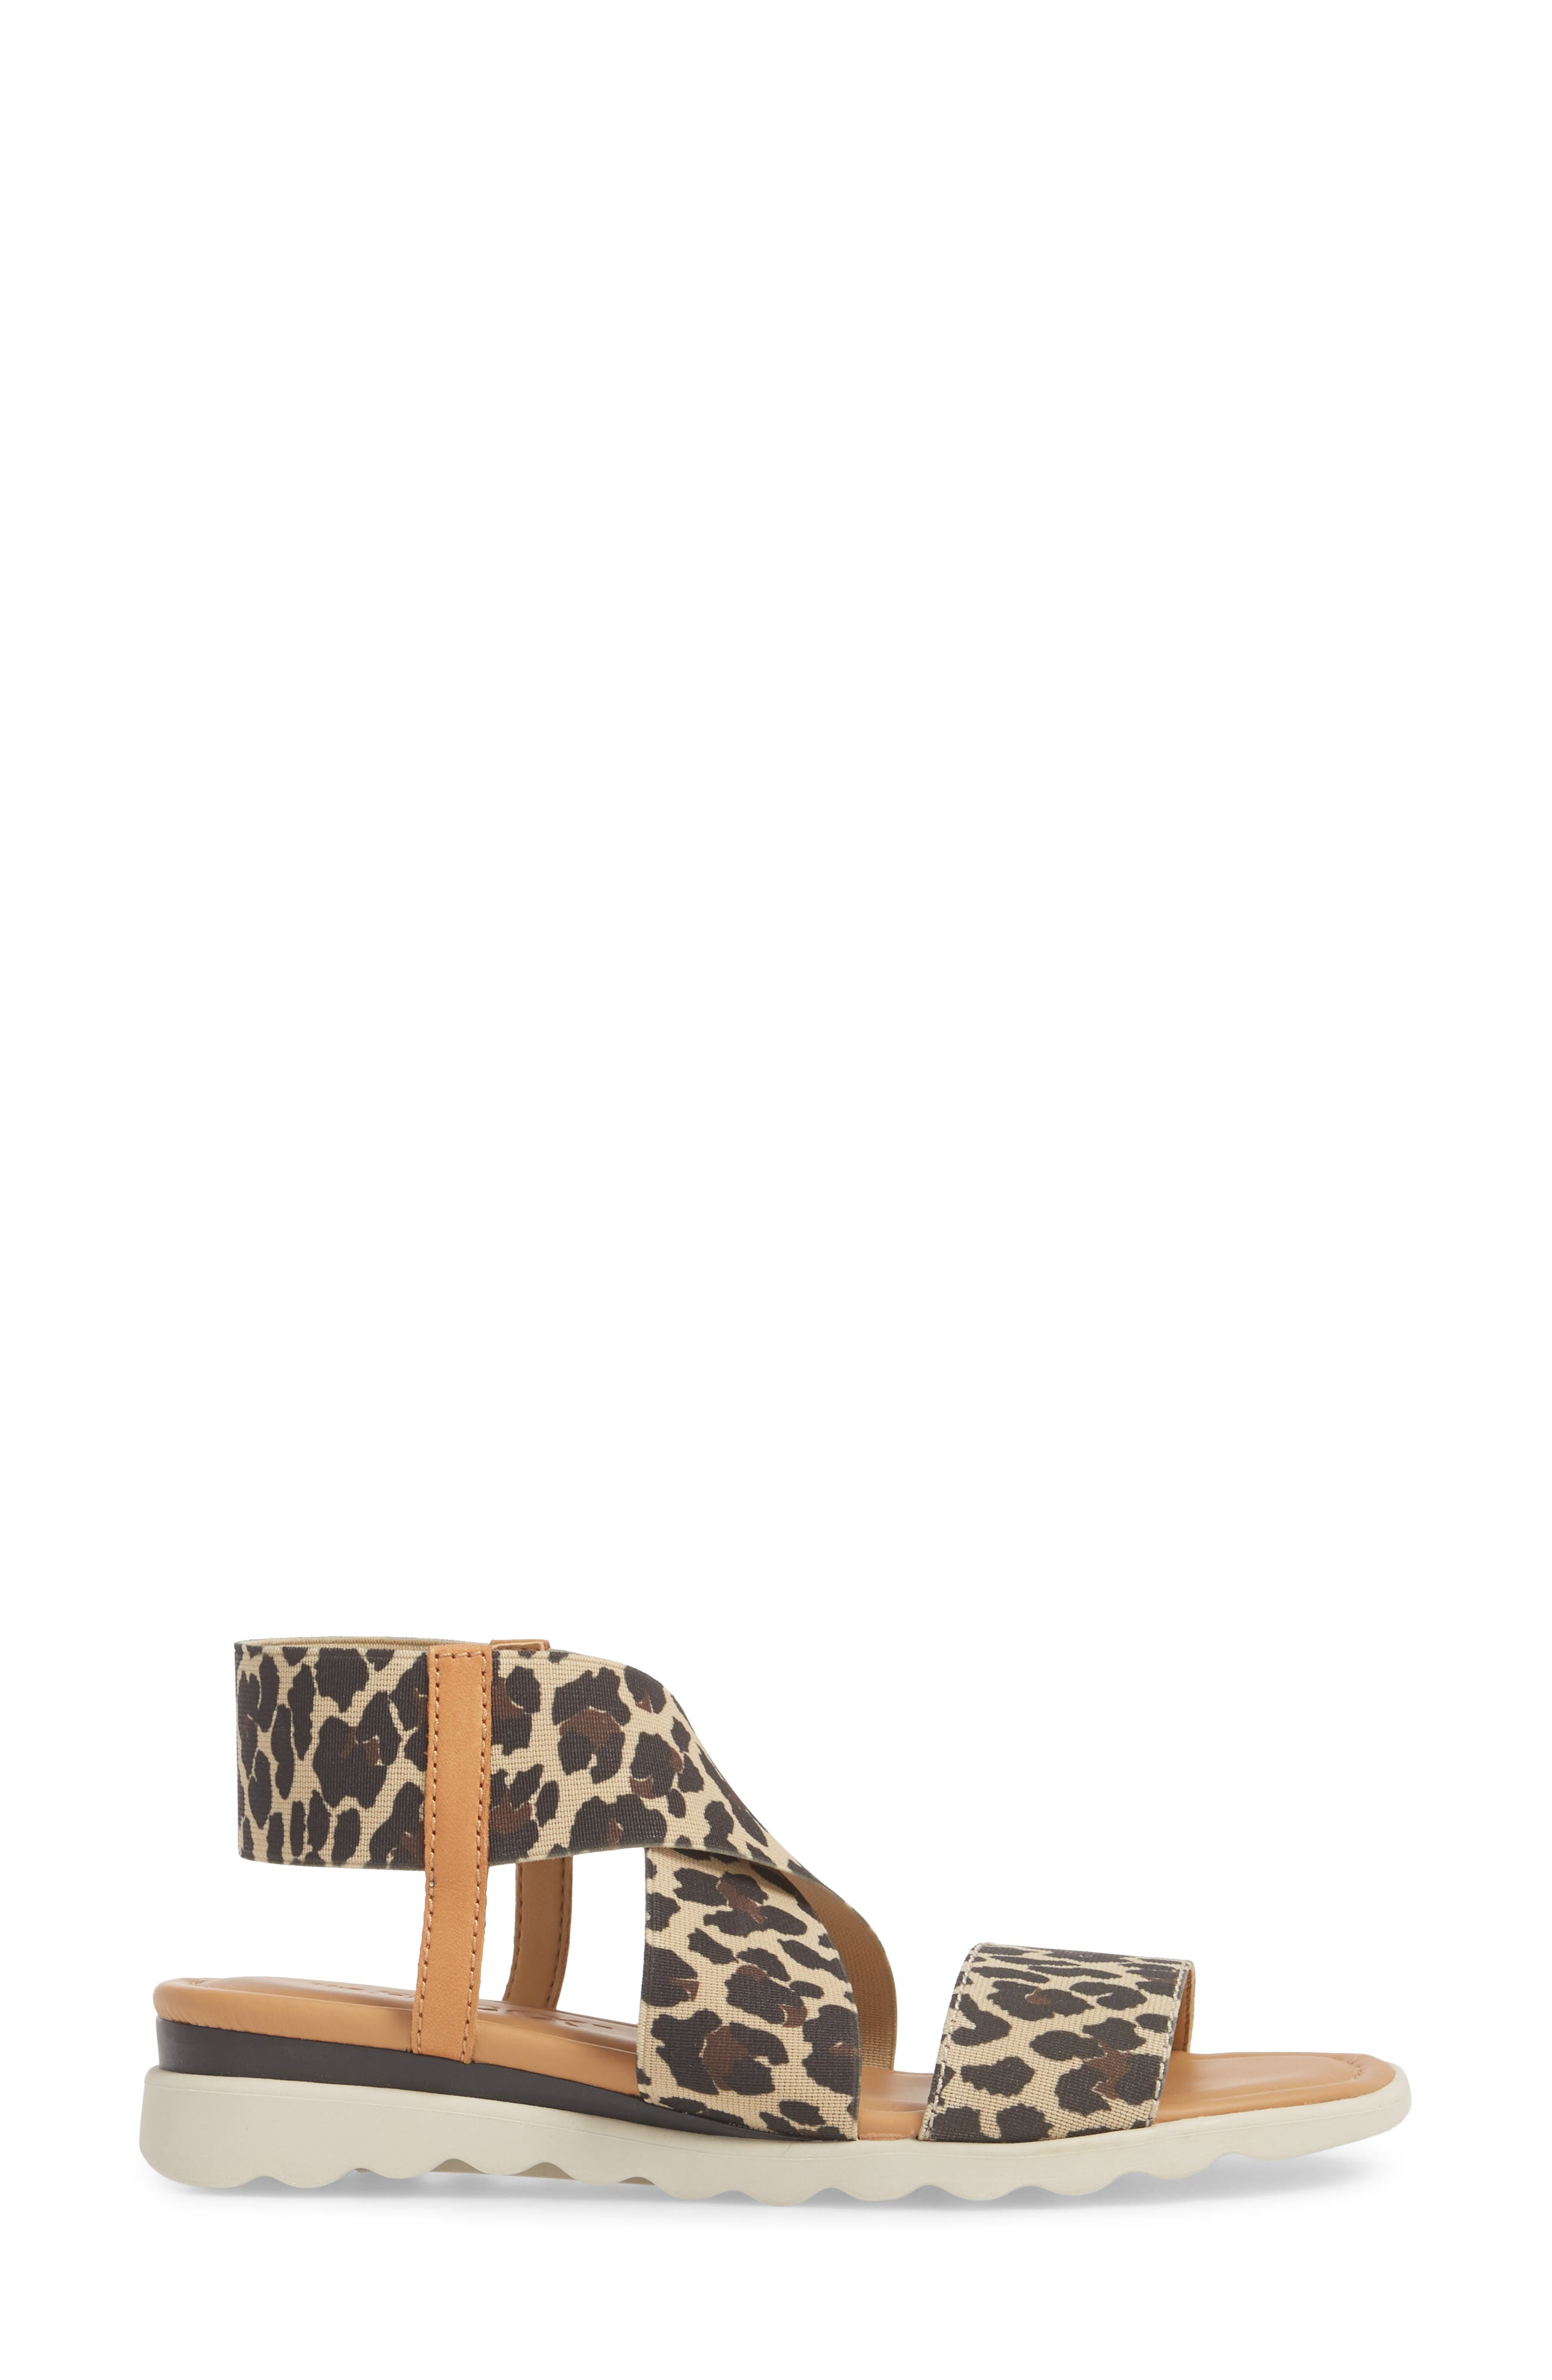 Extra Sandal,                             Alternate thumbnail 3, color,                             DUNE LEOPARD FABRIC